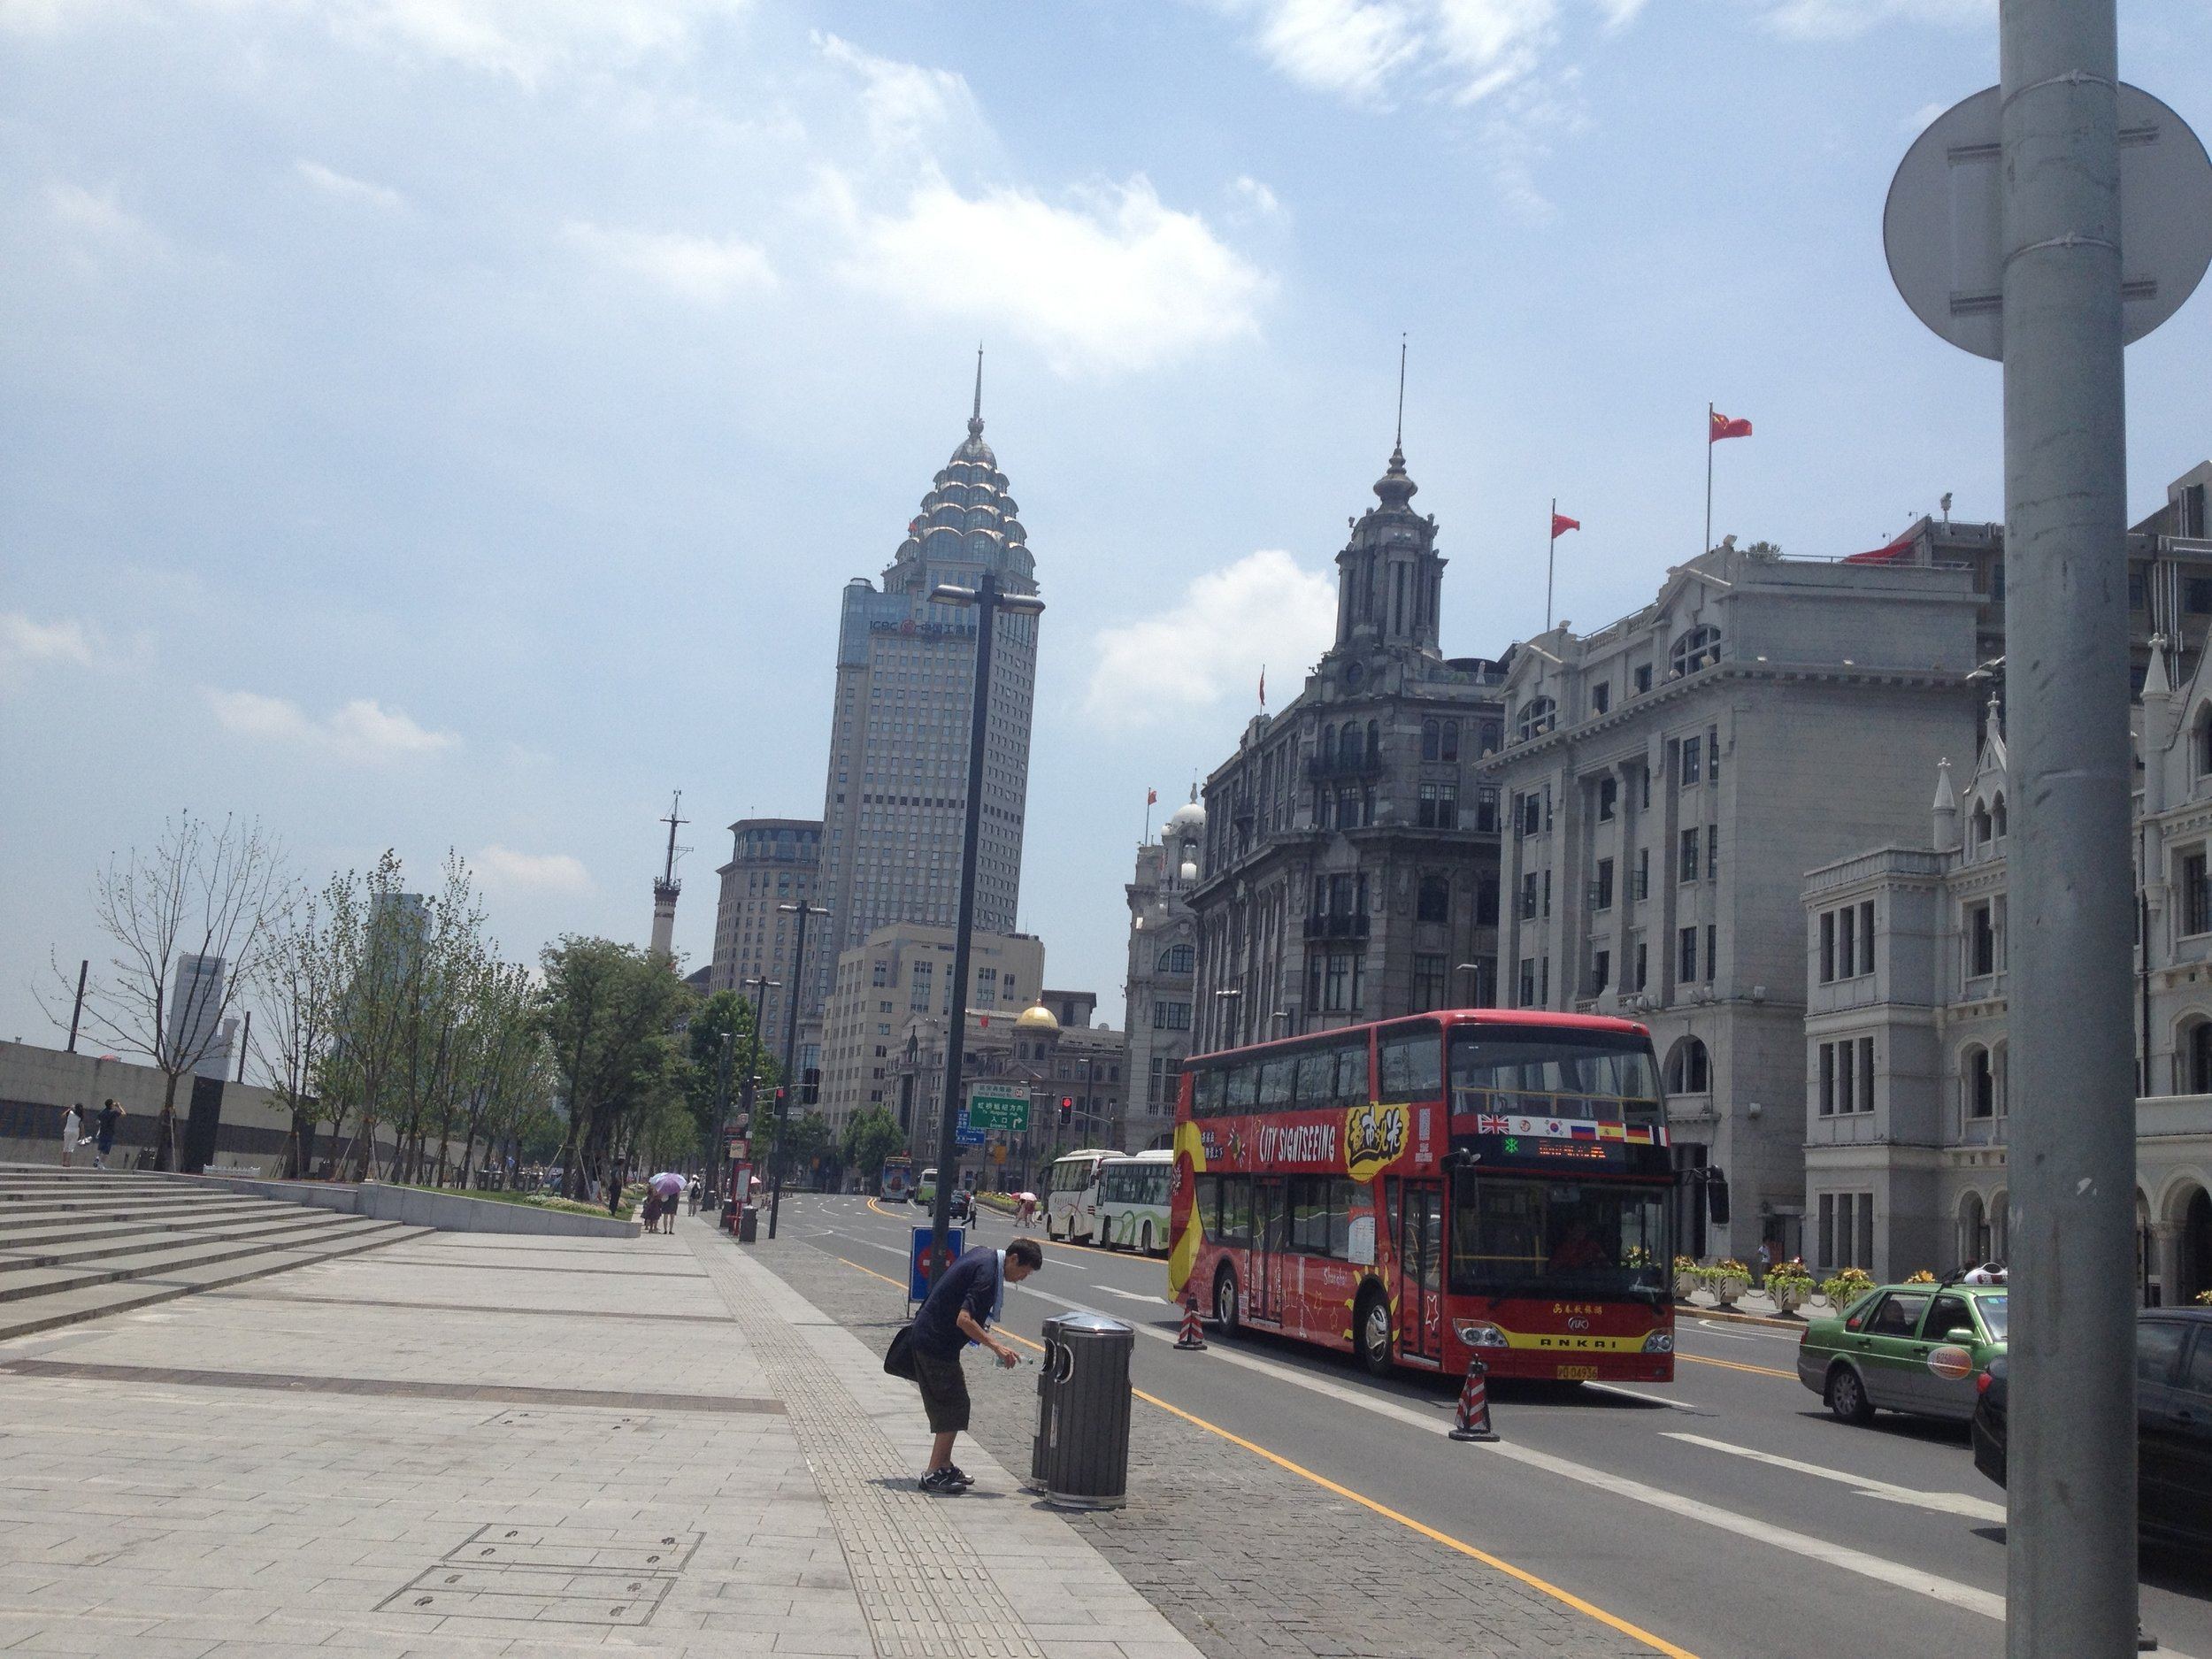 Shanghai - The Bund - Puxi side